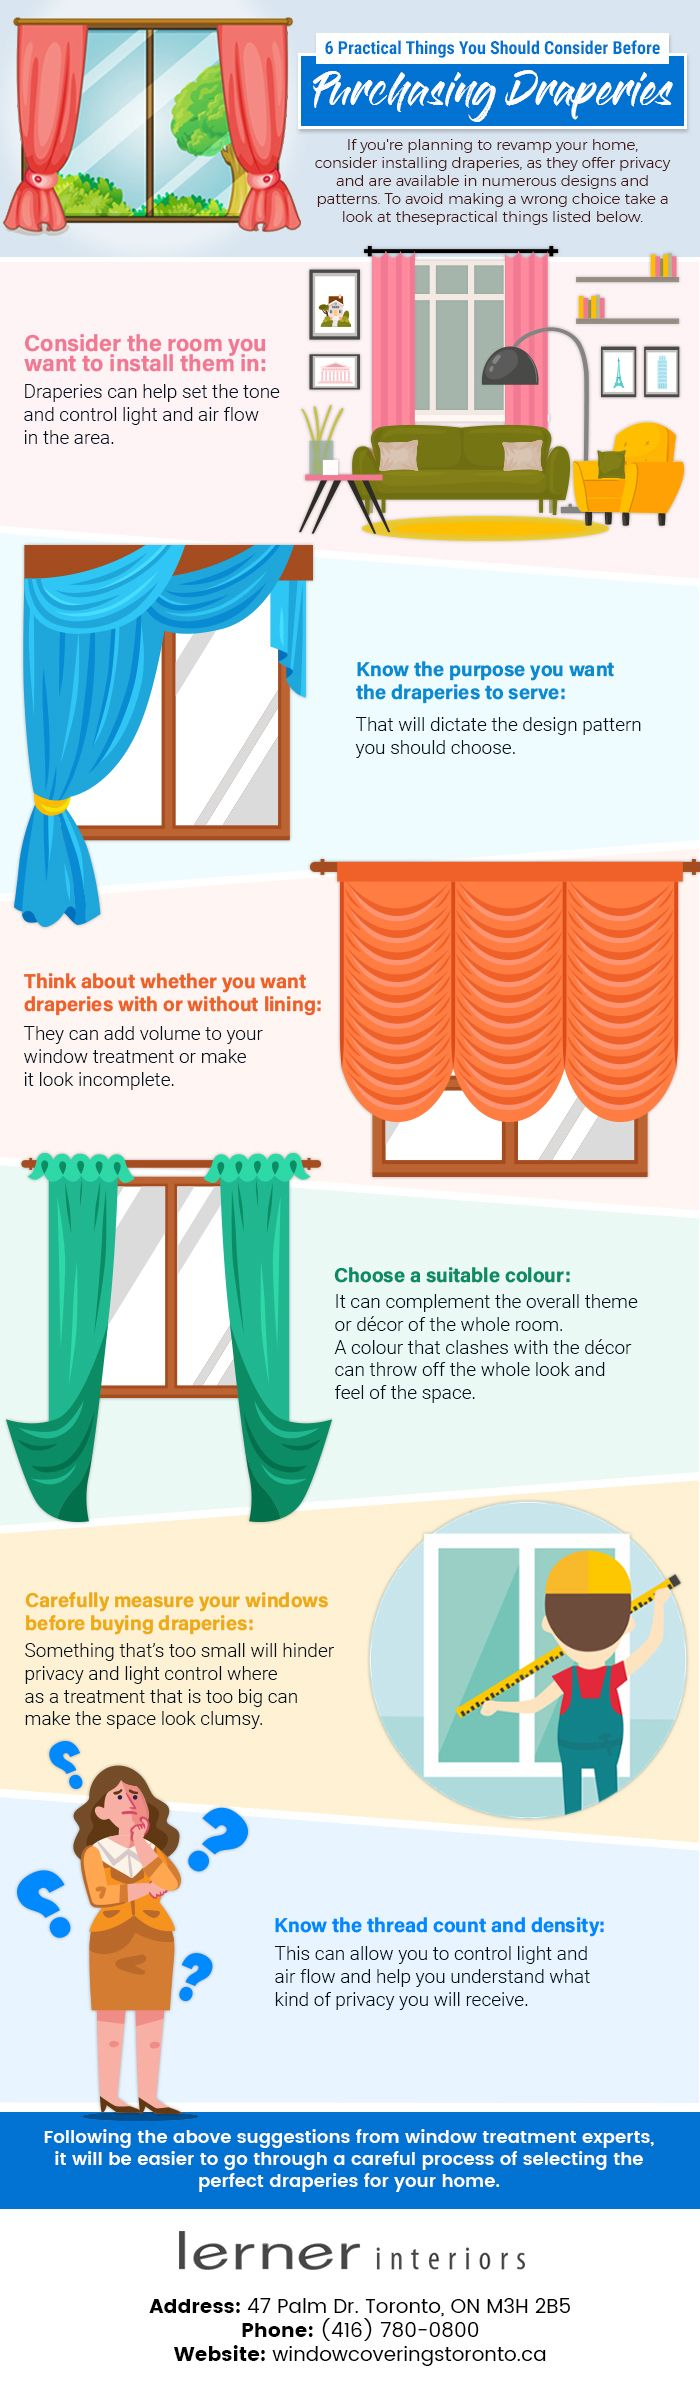 6 Things to Consider Before Purchasing Draperies